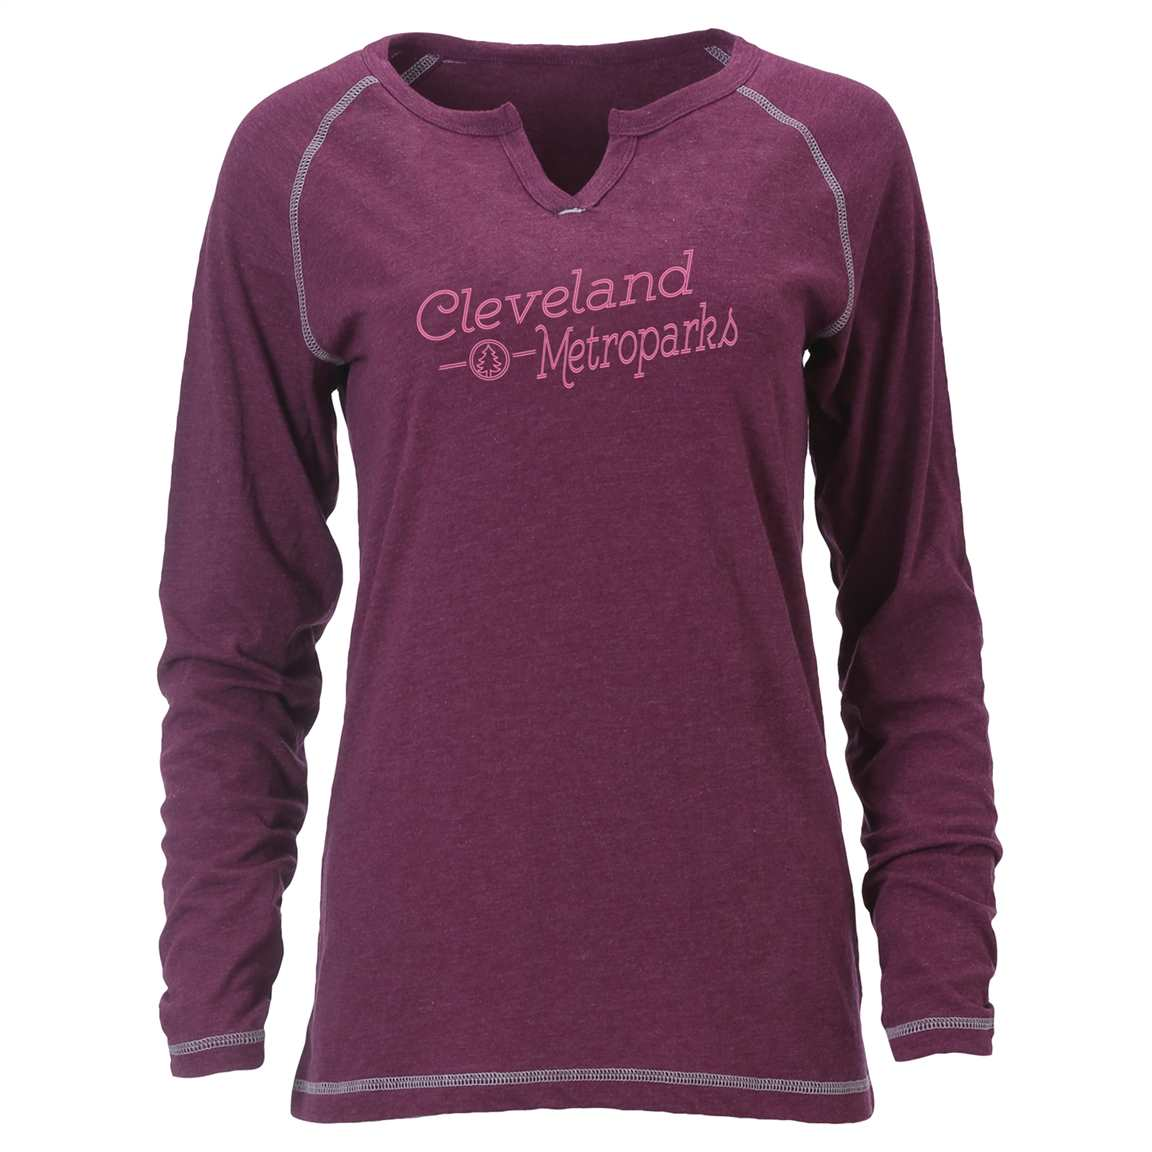 Ladies vneck LS